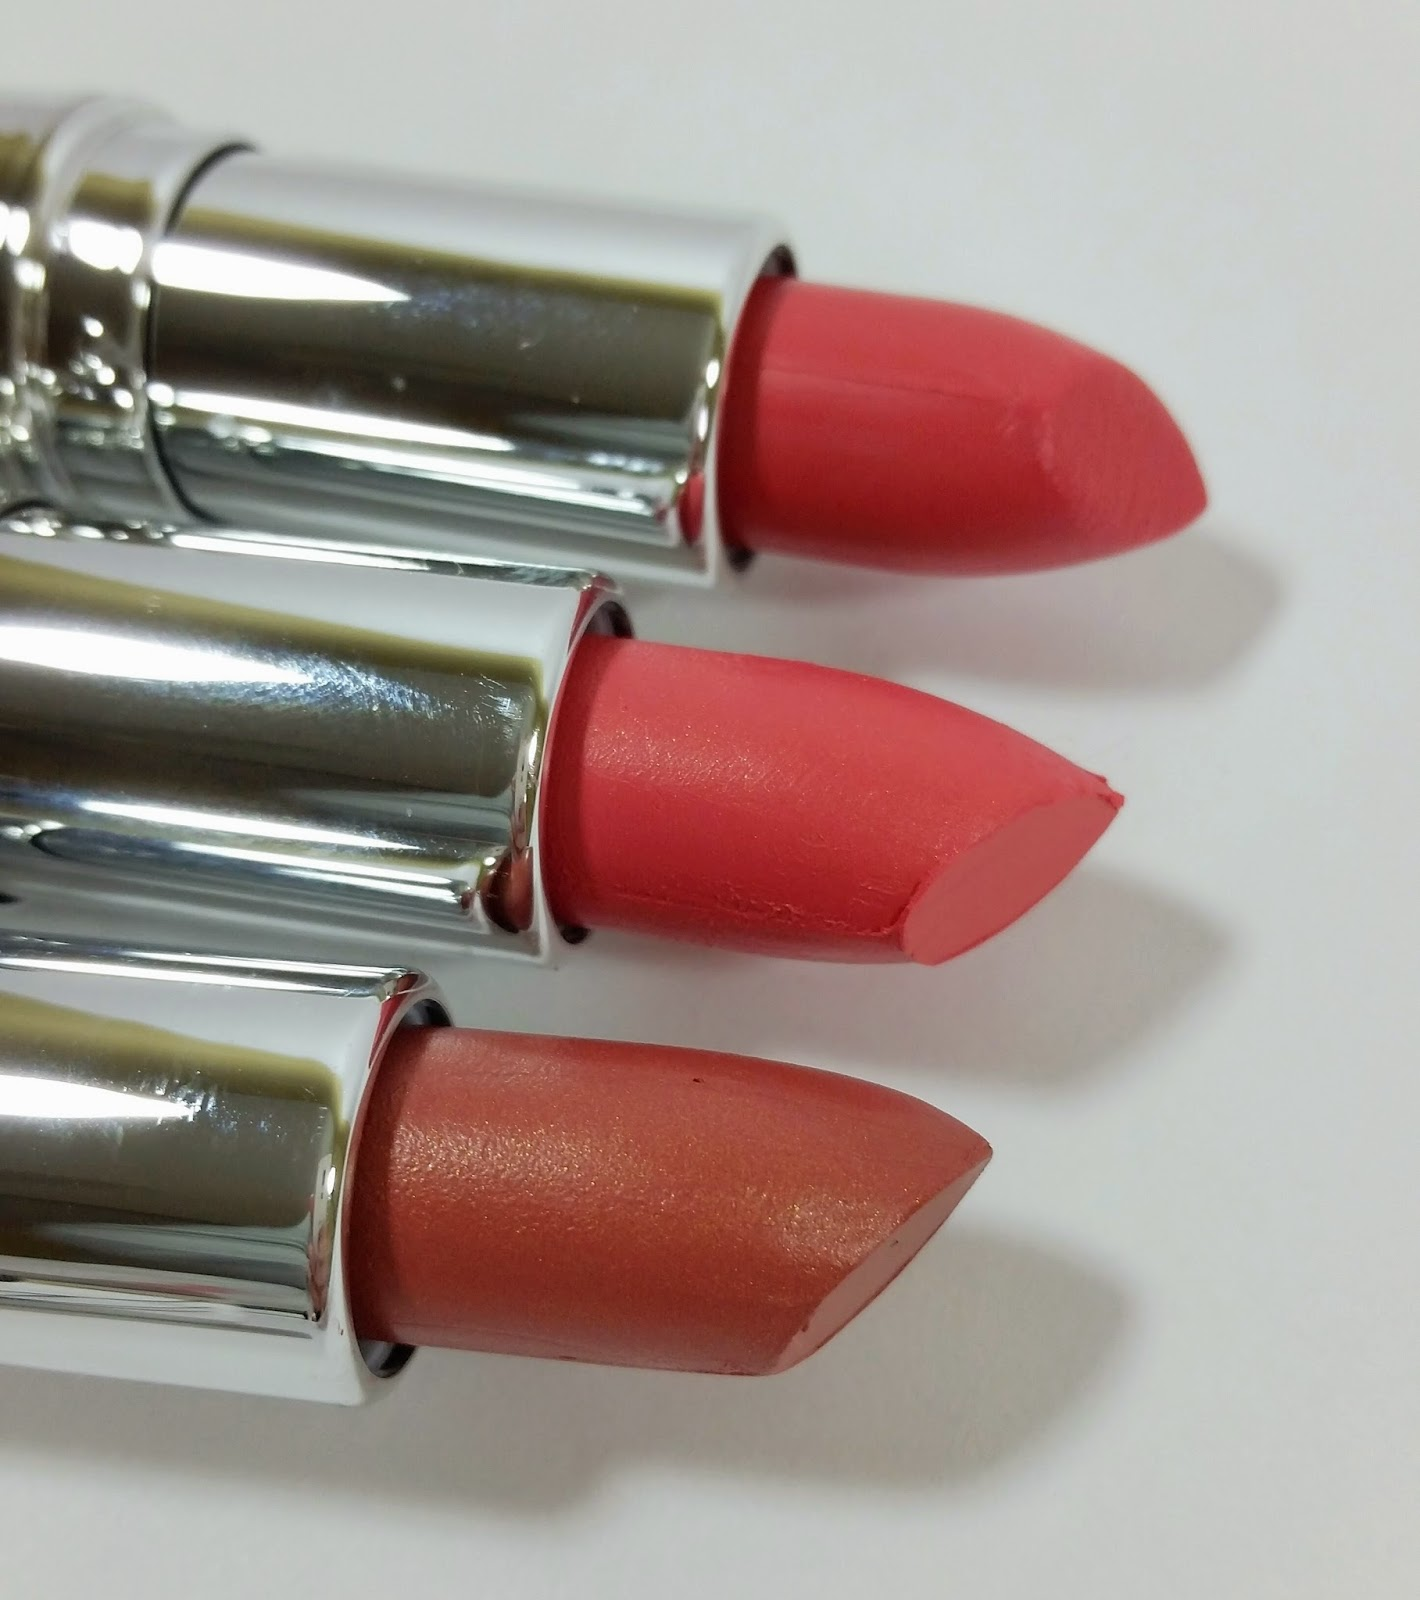 Hard Candy Plumping Gel lipstick swatches